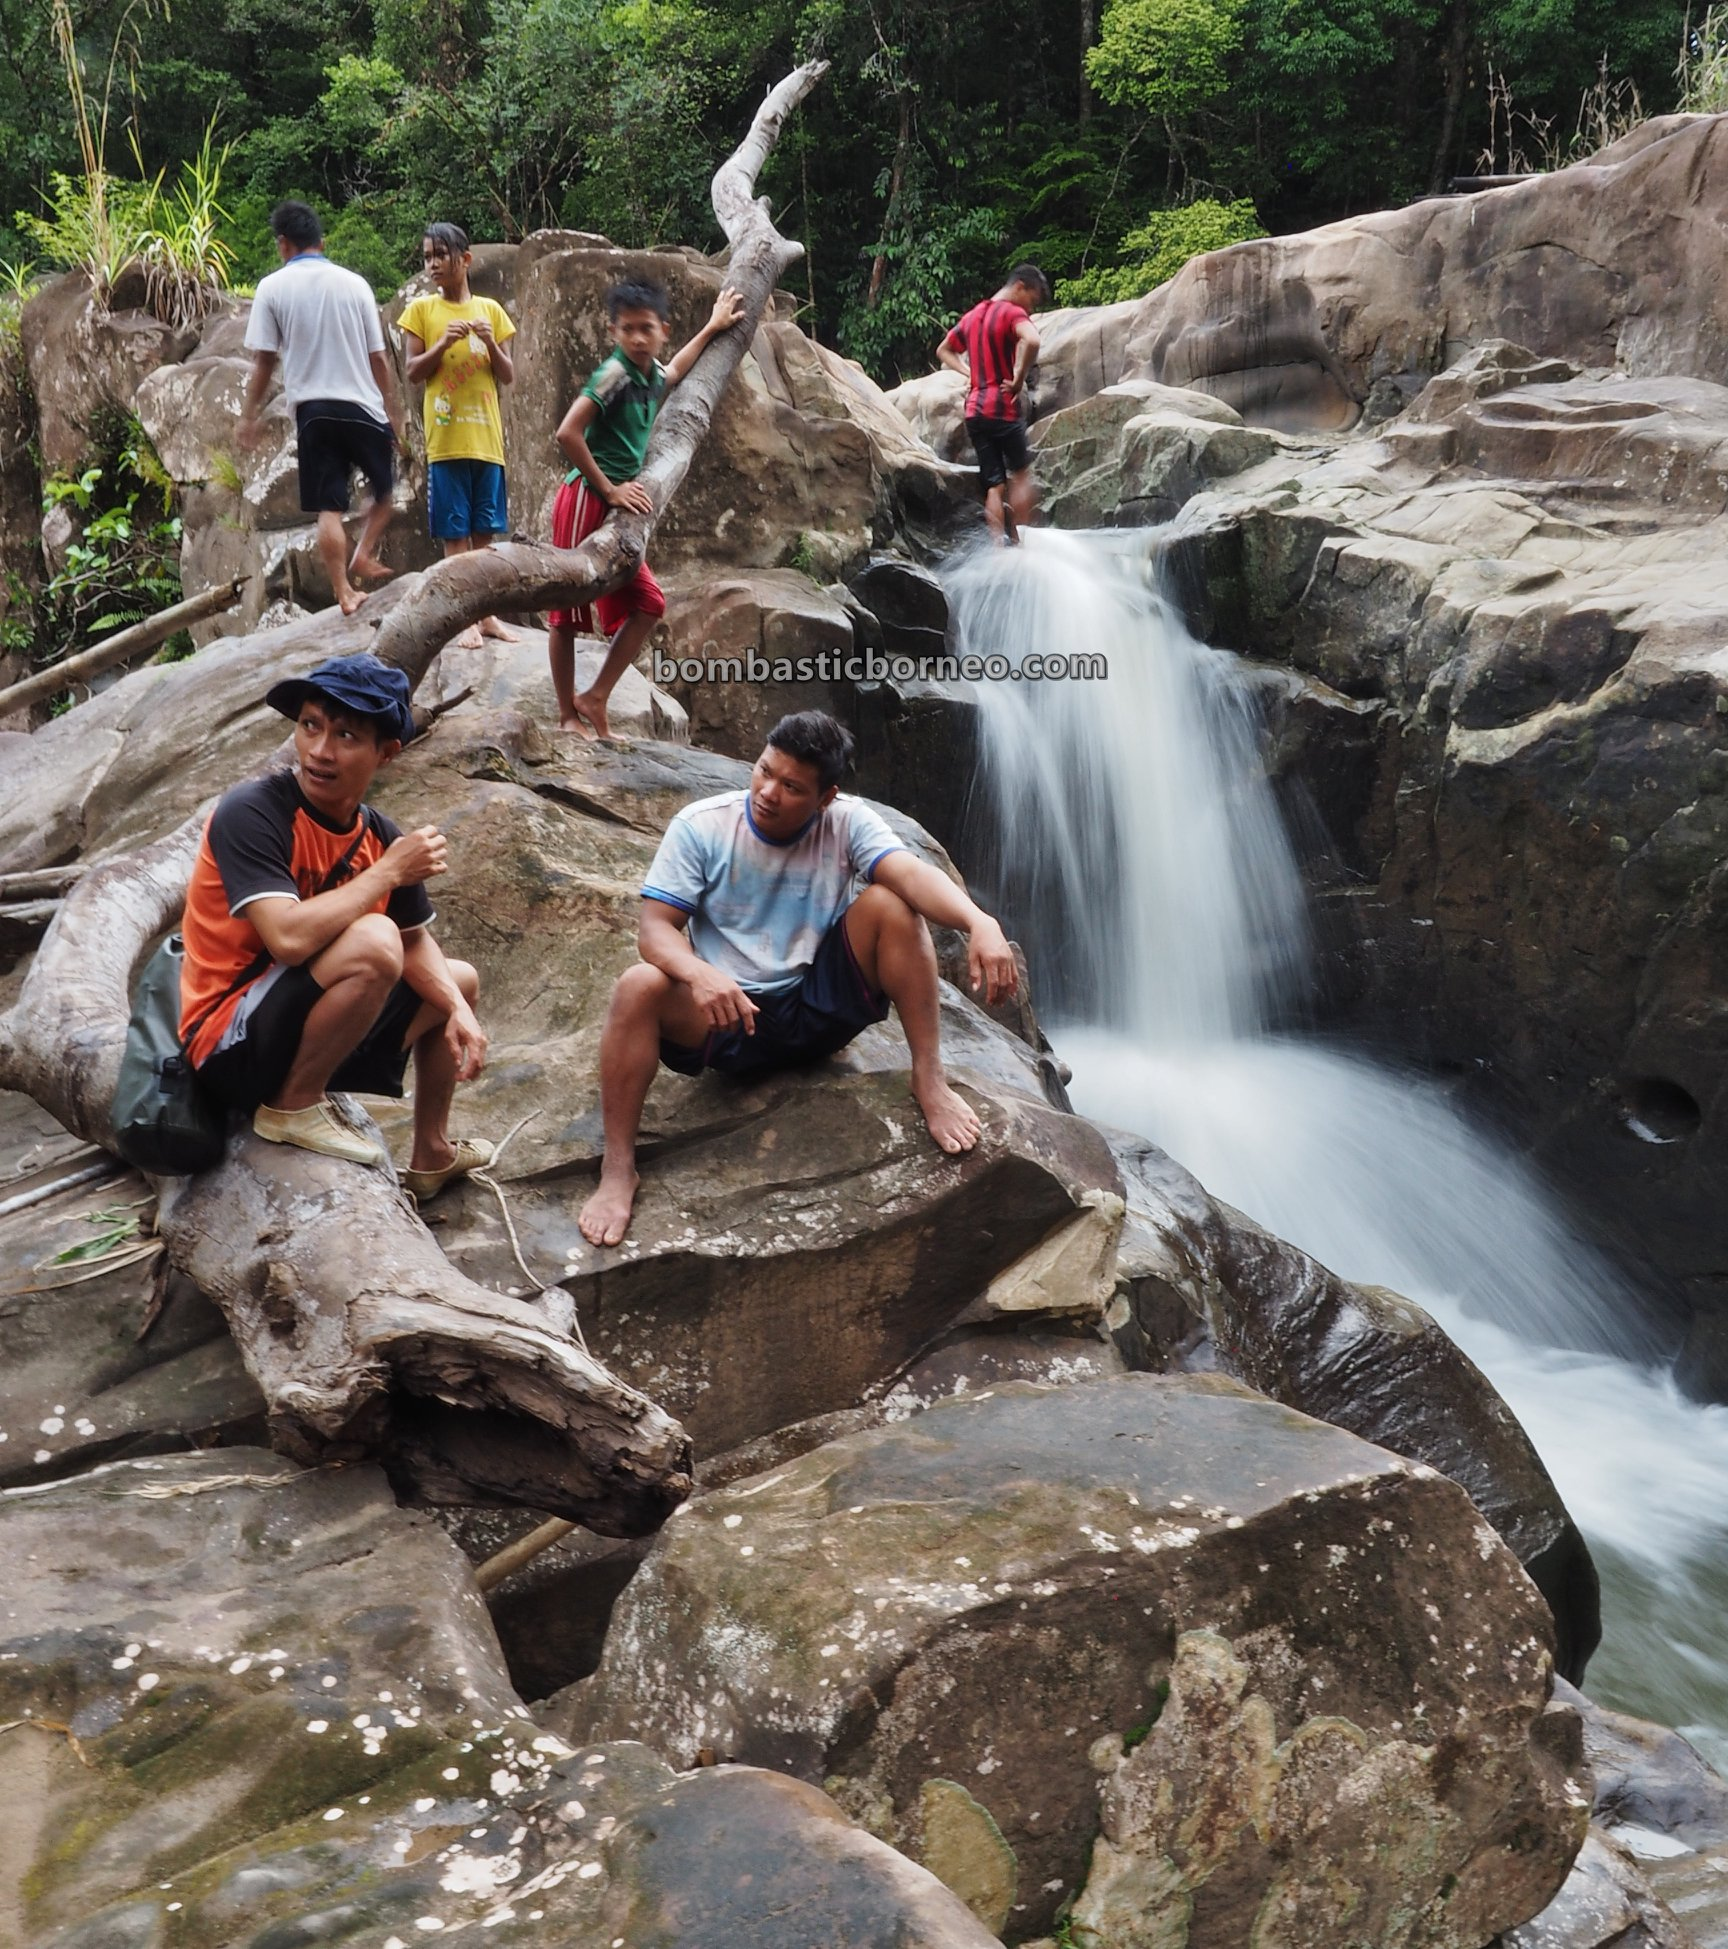 Riam Kodu, Waterfall, Dusun Simpang Empat, adventure, nature, outdoor, exploration, Indonesia, West Kalimantan, Bengkayang, tourist attraction, travel guide, native, Trans Border, Borneo,